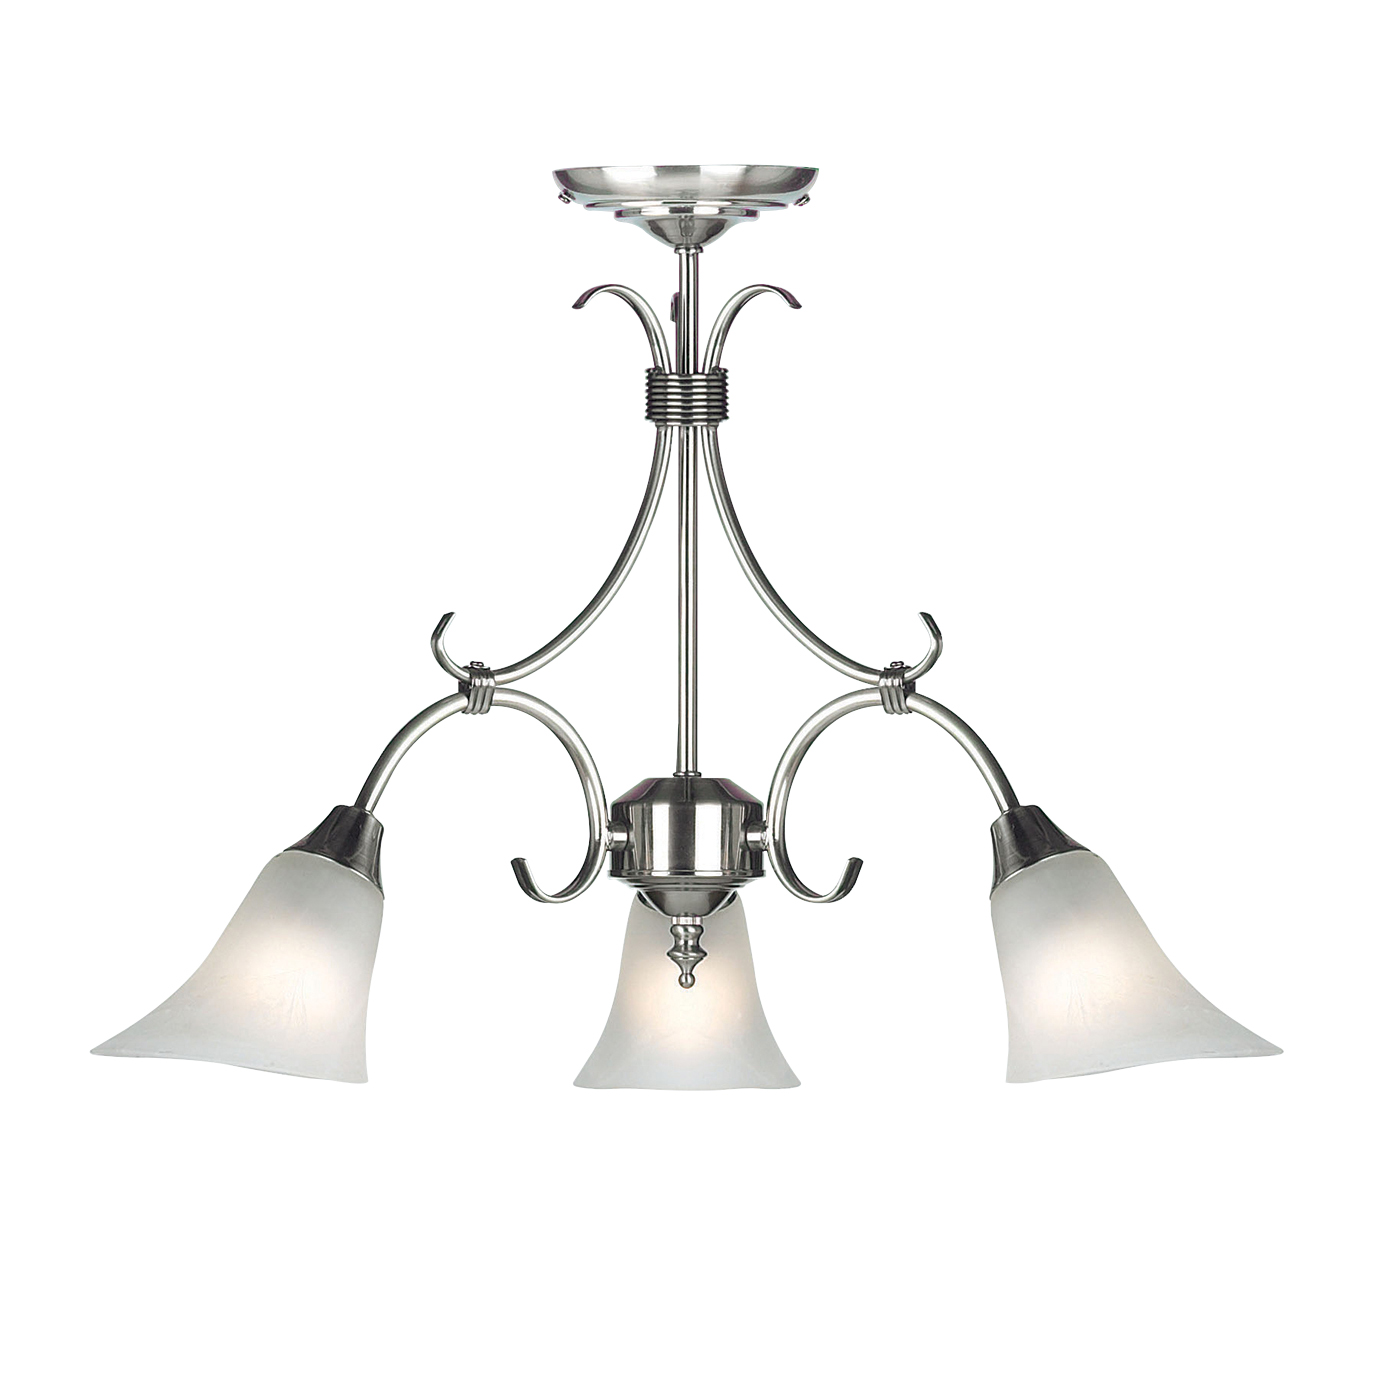 Endon Hardwick pendant 3x 40W Antique silver effect plate & frosted glass Thumbnail 1